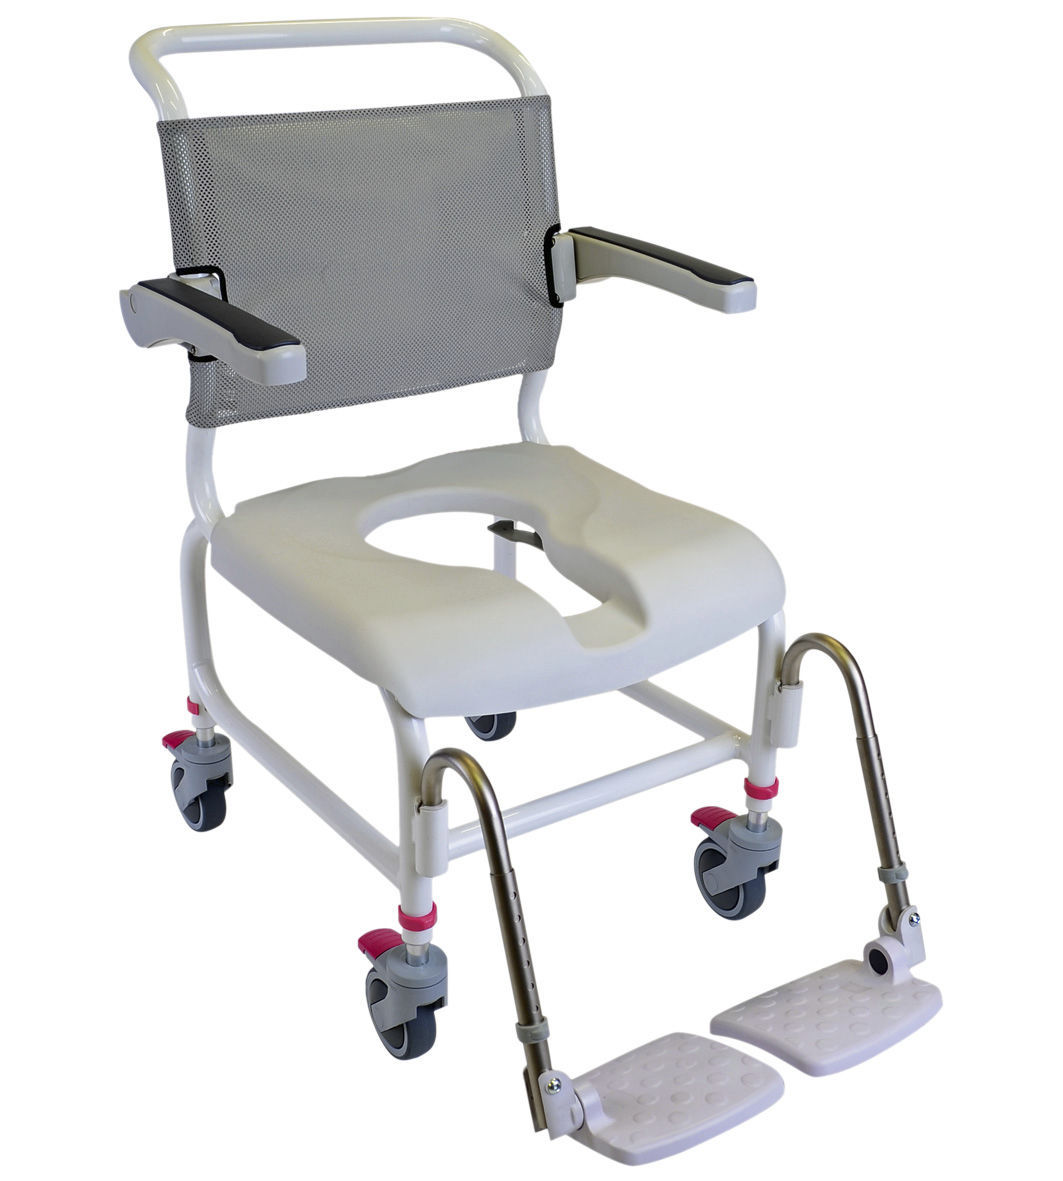 Commode Angle Shower Chair With Armrests On Casters With Cutout Seat